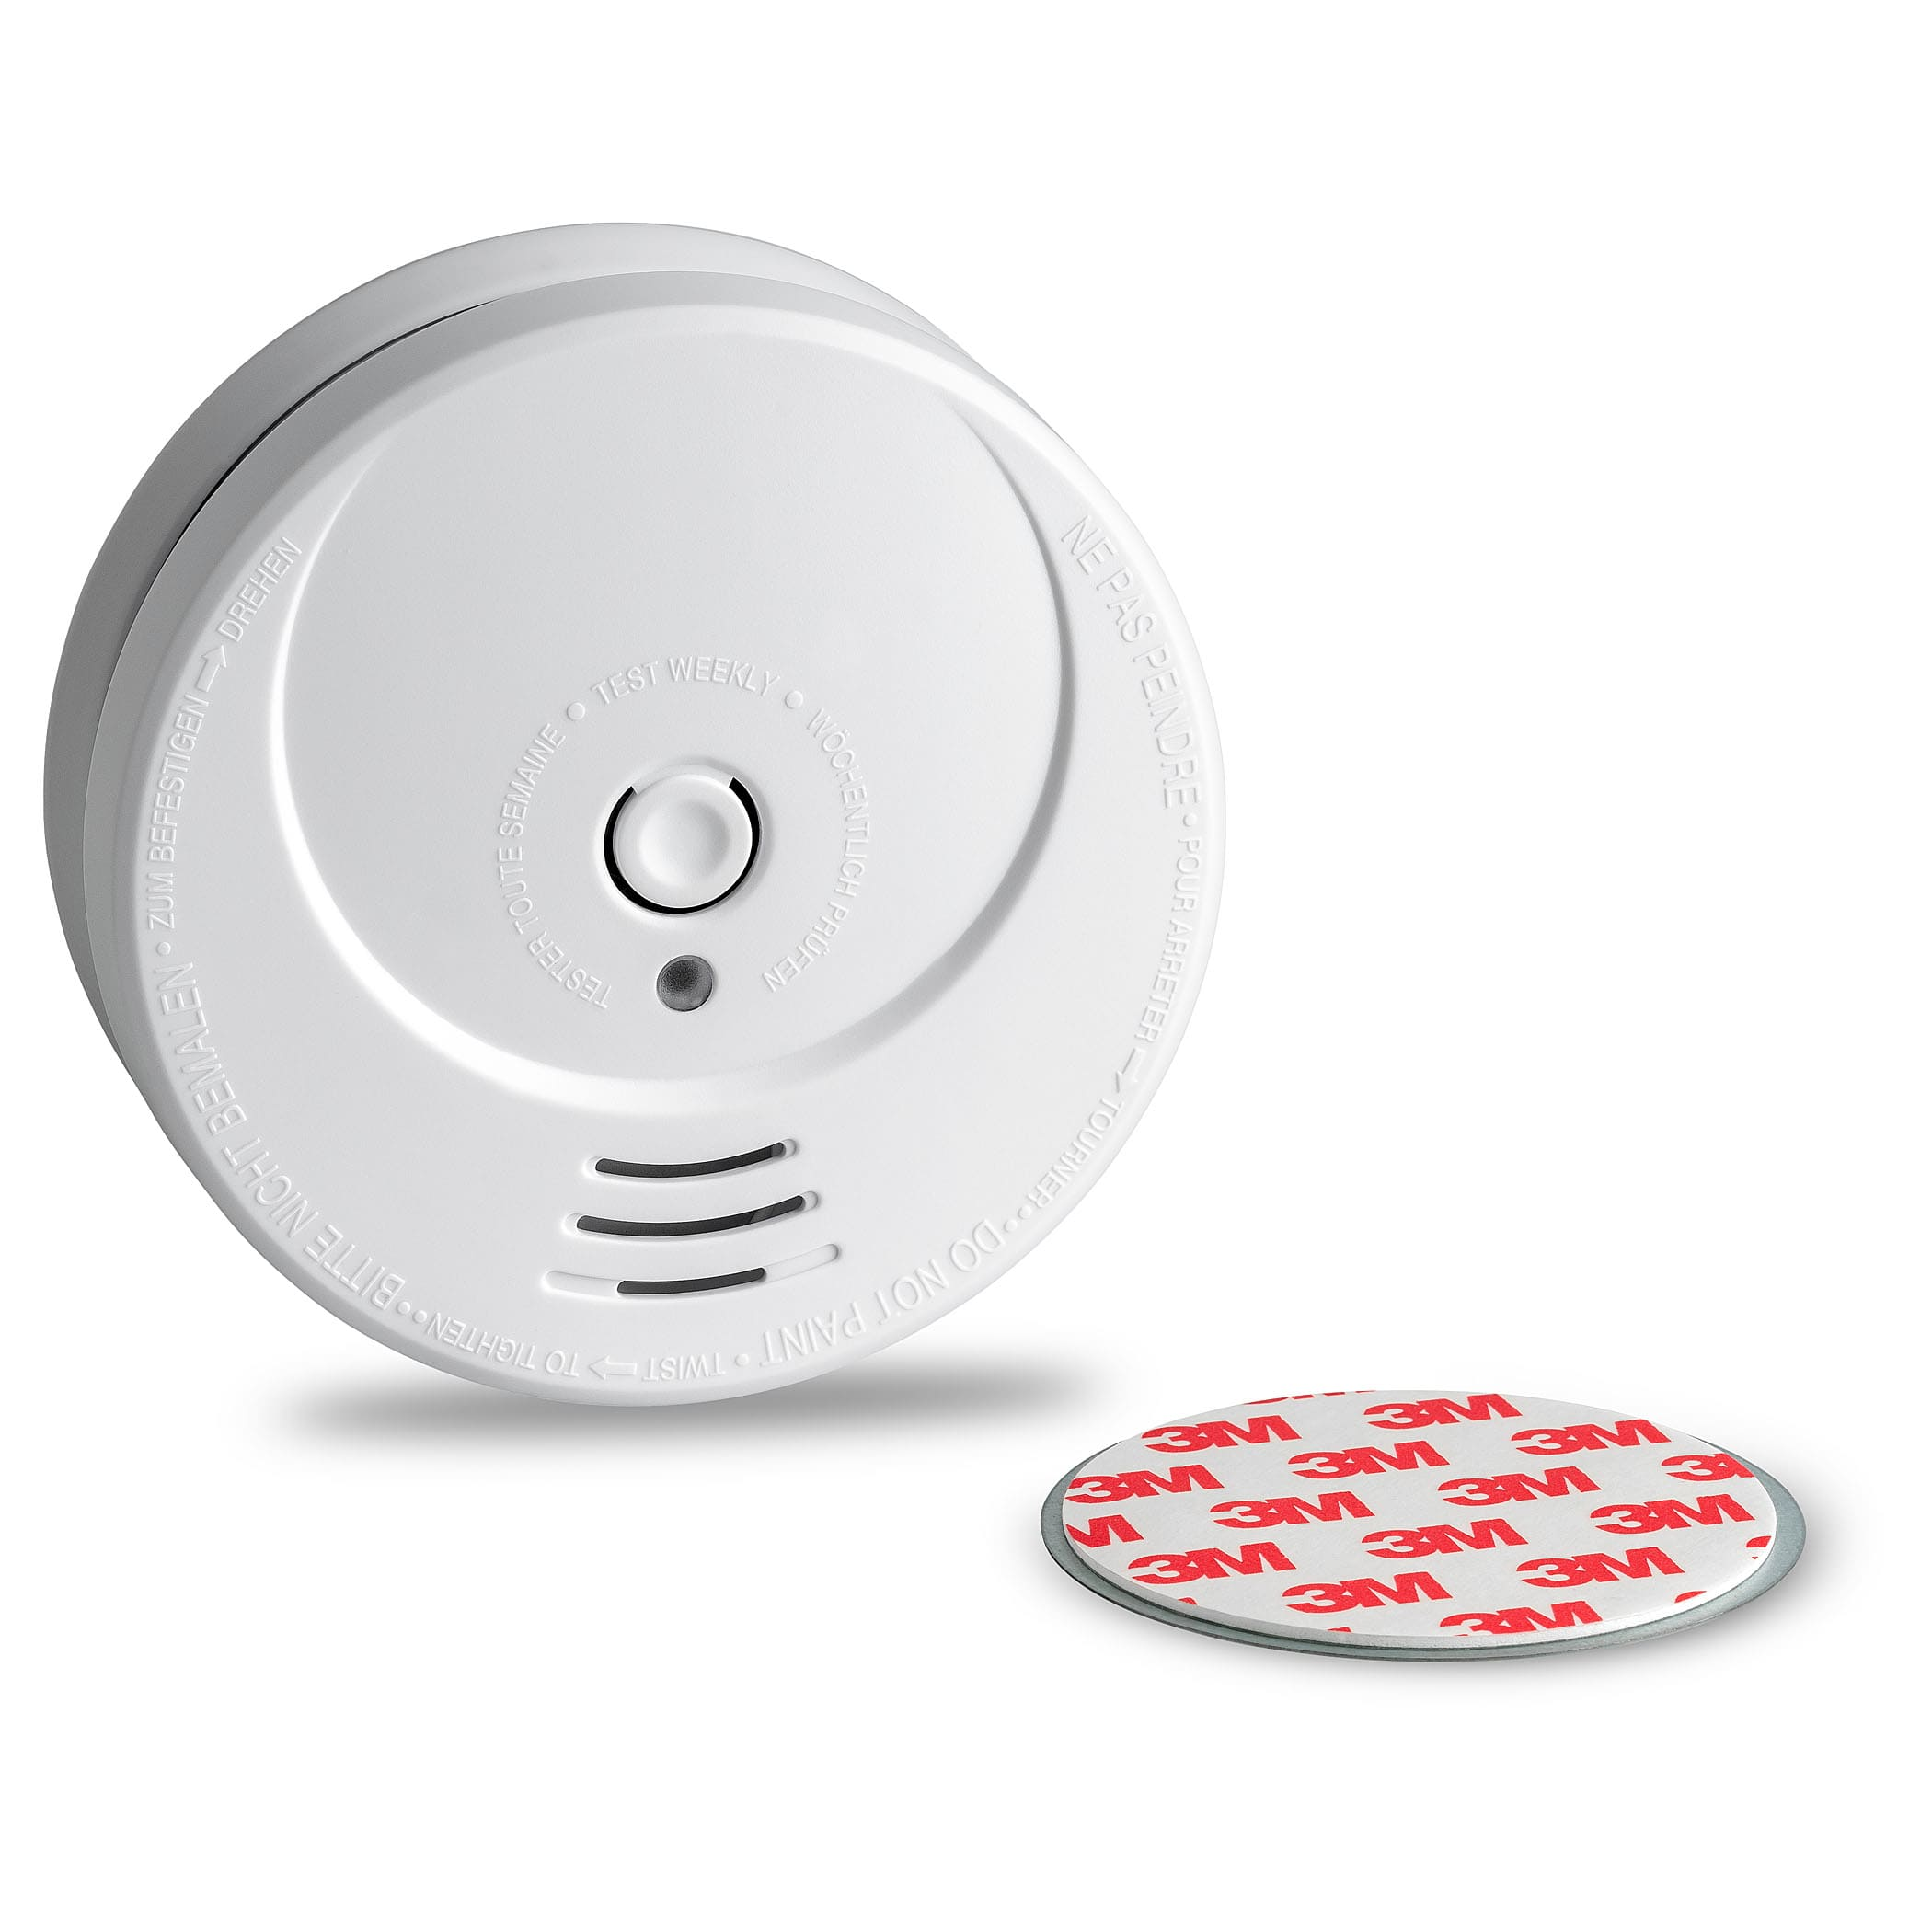 Rauchmelder Küche Test Smoke Alarm Sd Set Gs506g Ms | Buy Led Lamps And Led Lights In Sebson Store